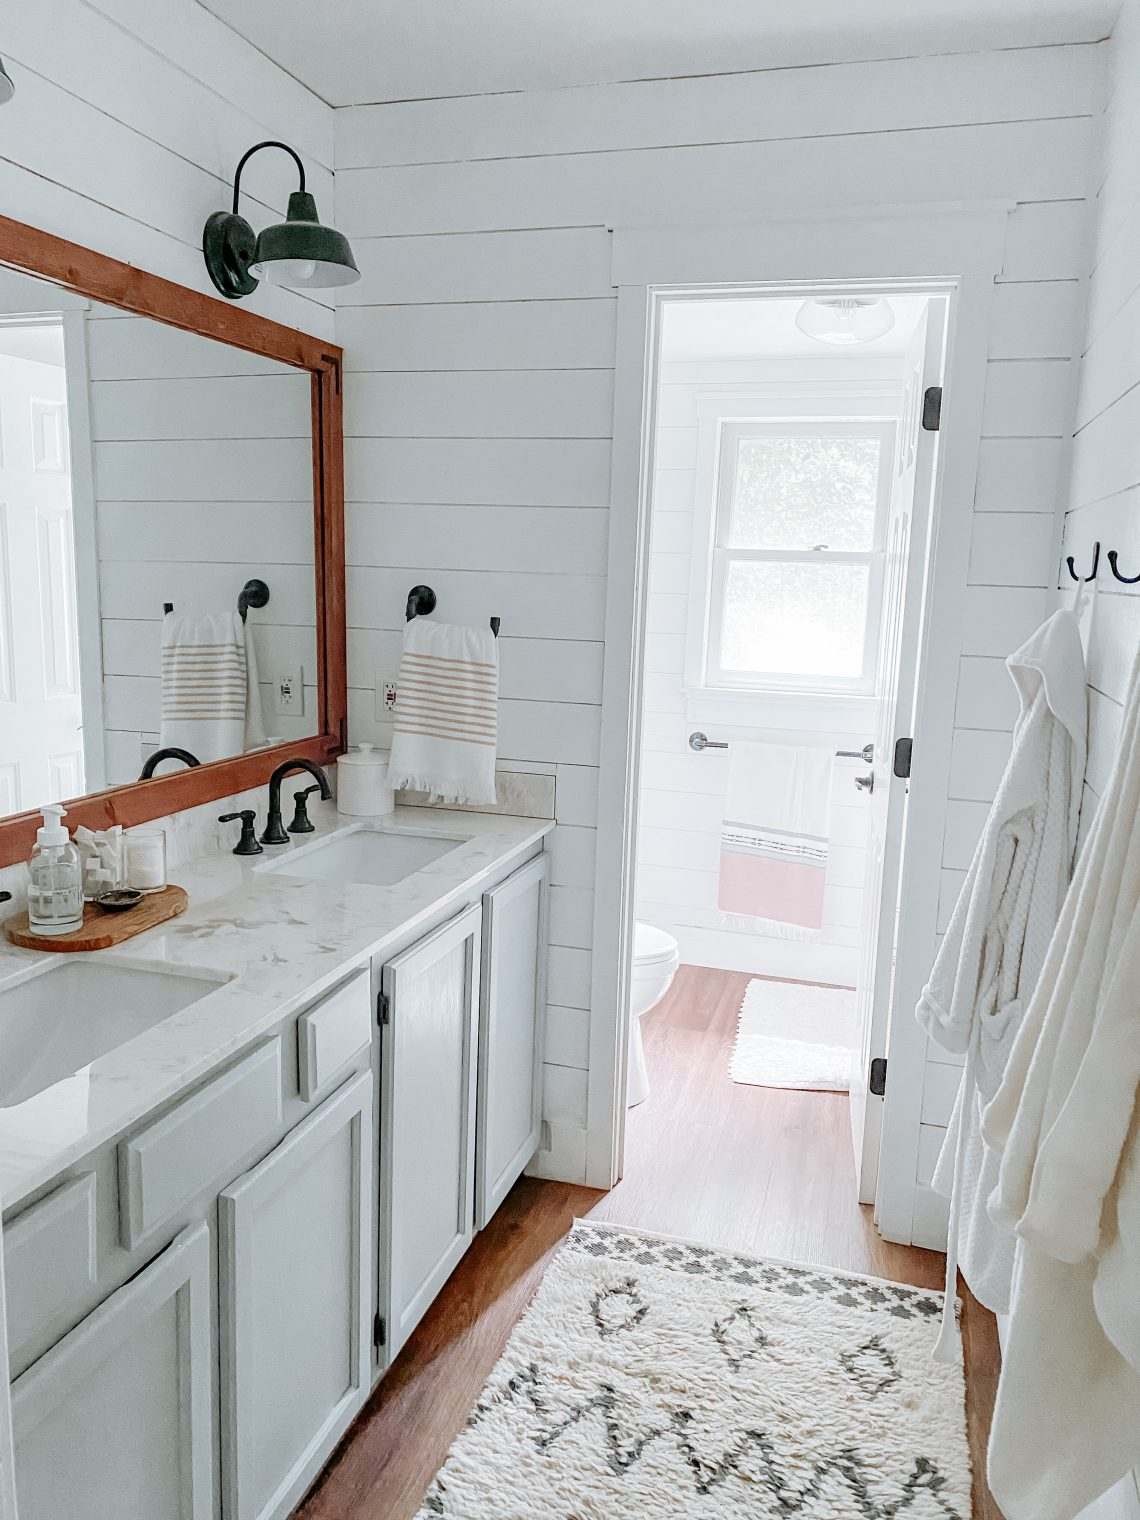 A completed bathroom with bright light, white shiplap walls, light colored counters, bronze hardware, and warm wood floors.